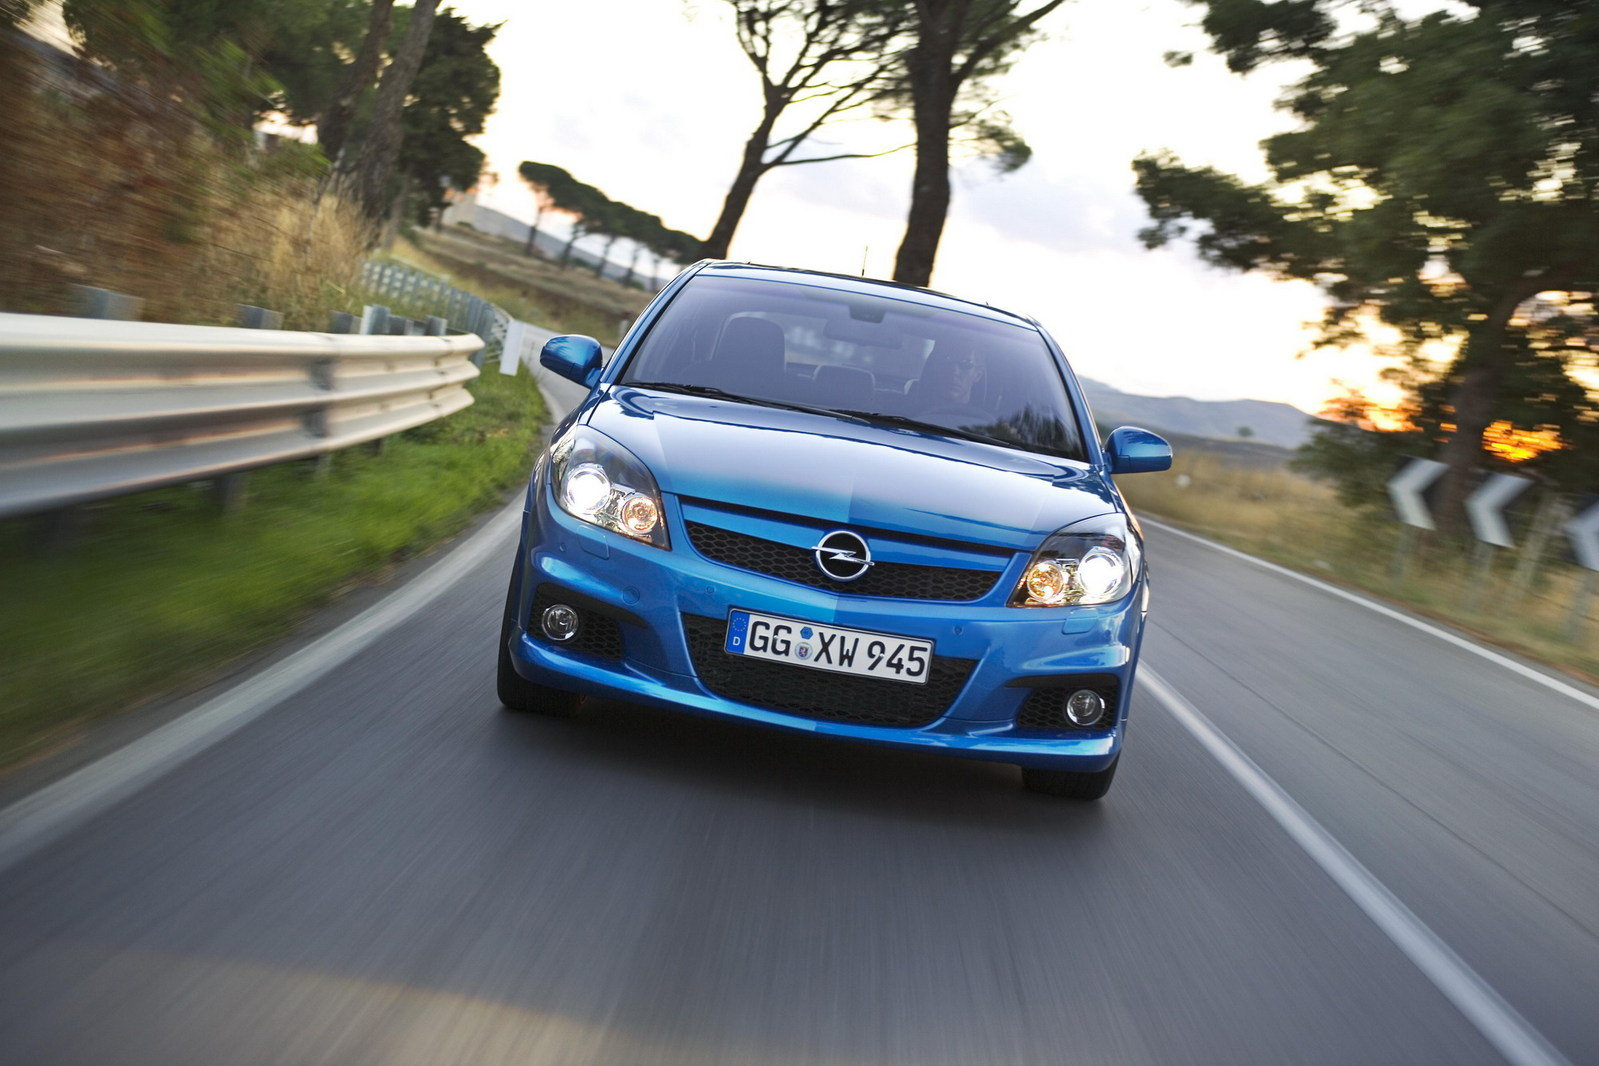 2008 opel vectra opc picture 190637 car review top speed. Black Bedroom Furniture Sets. Home Design Ideas